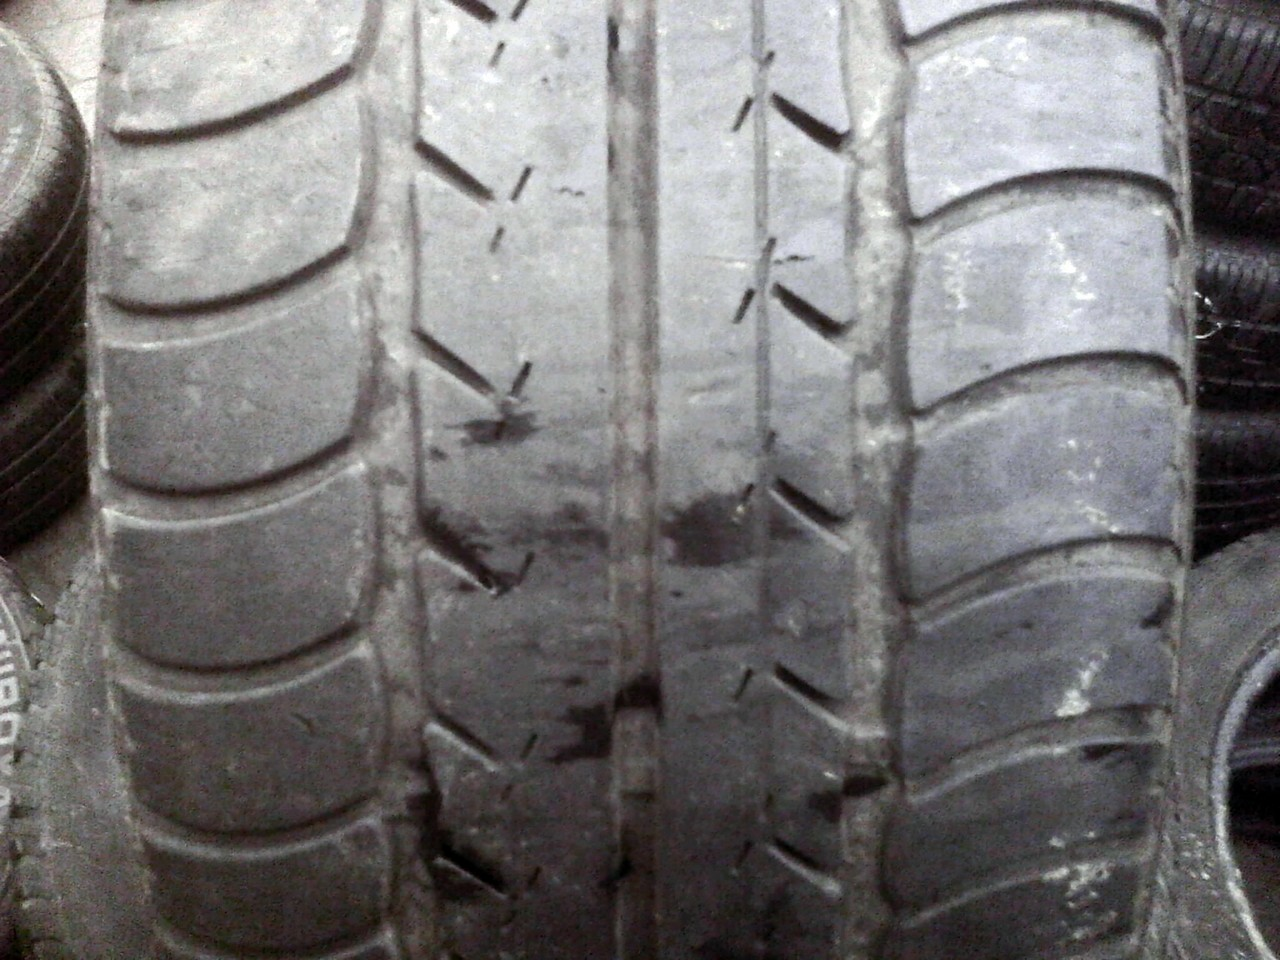 205/55 R16 GOODYEAR EAGLE NCT 5 91H 5мм